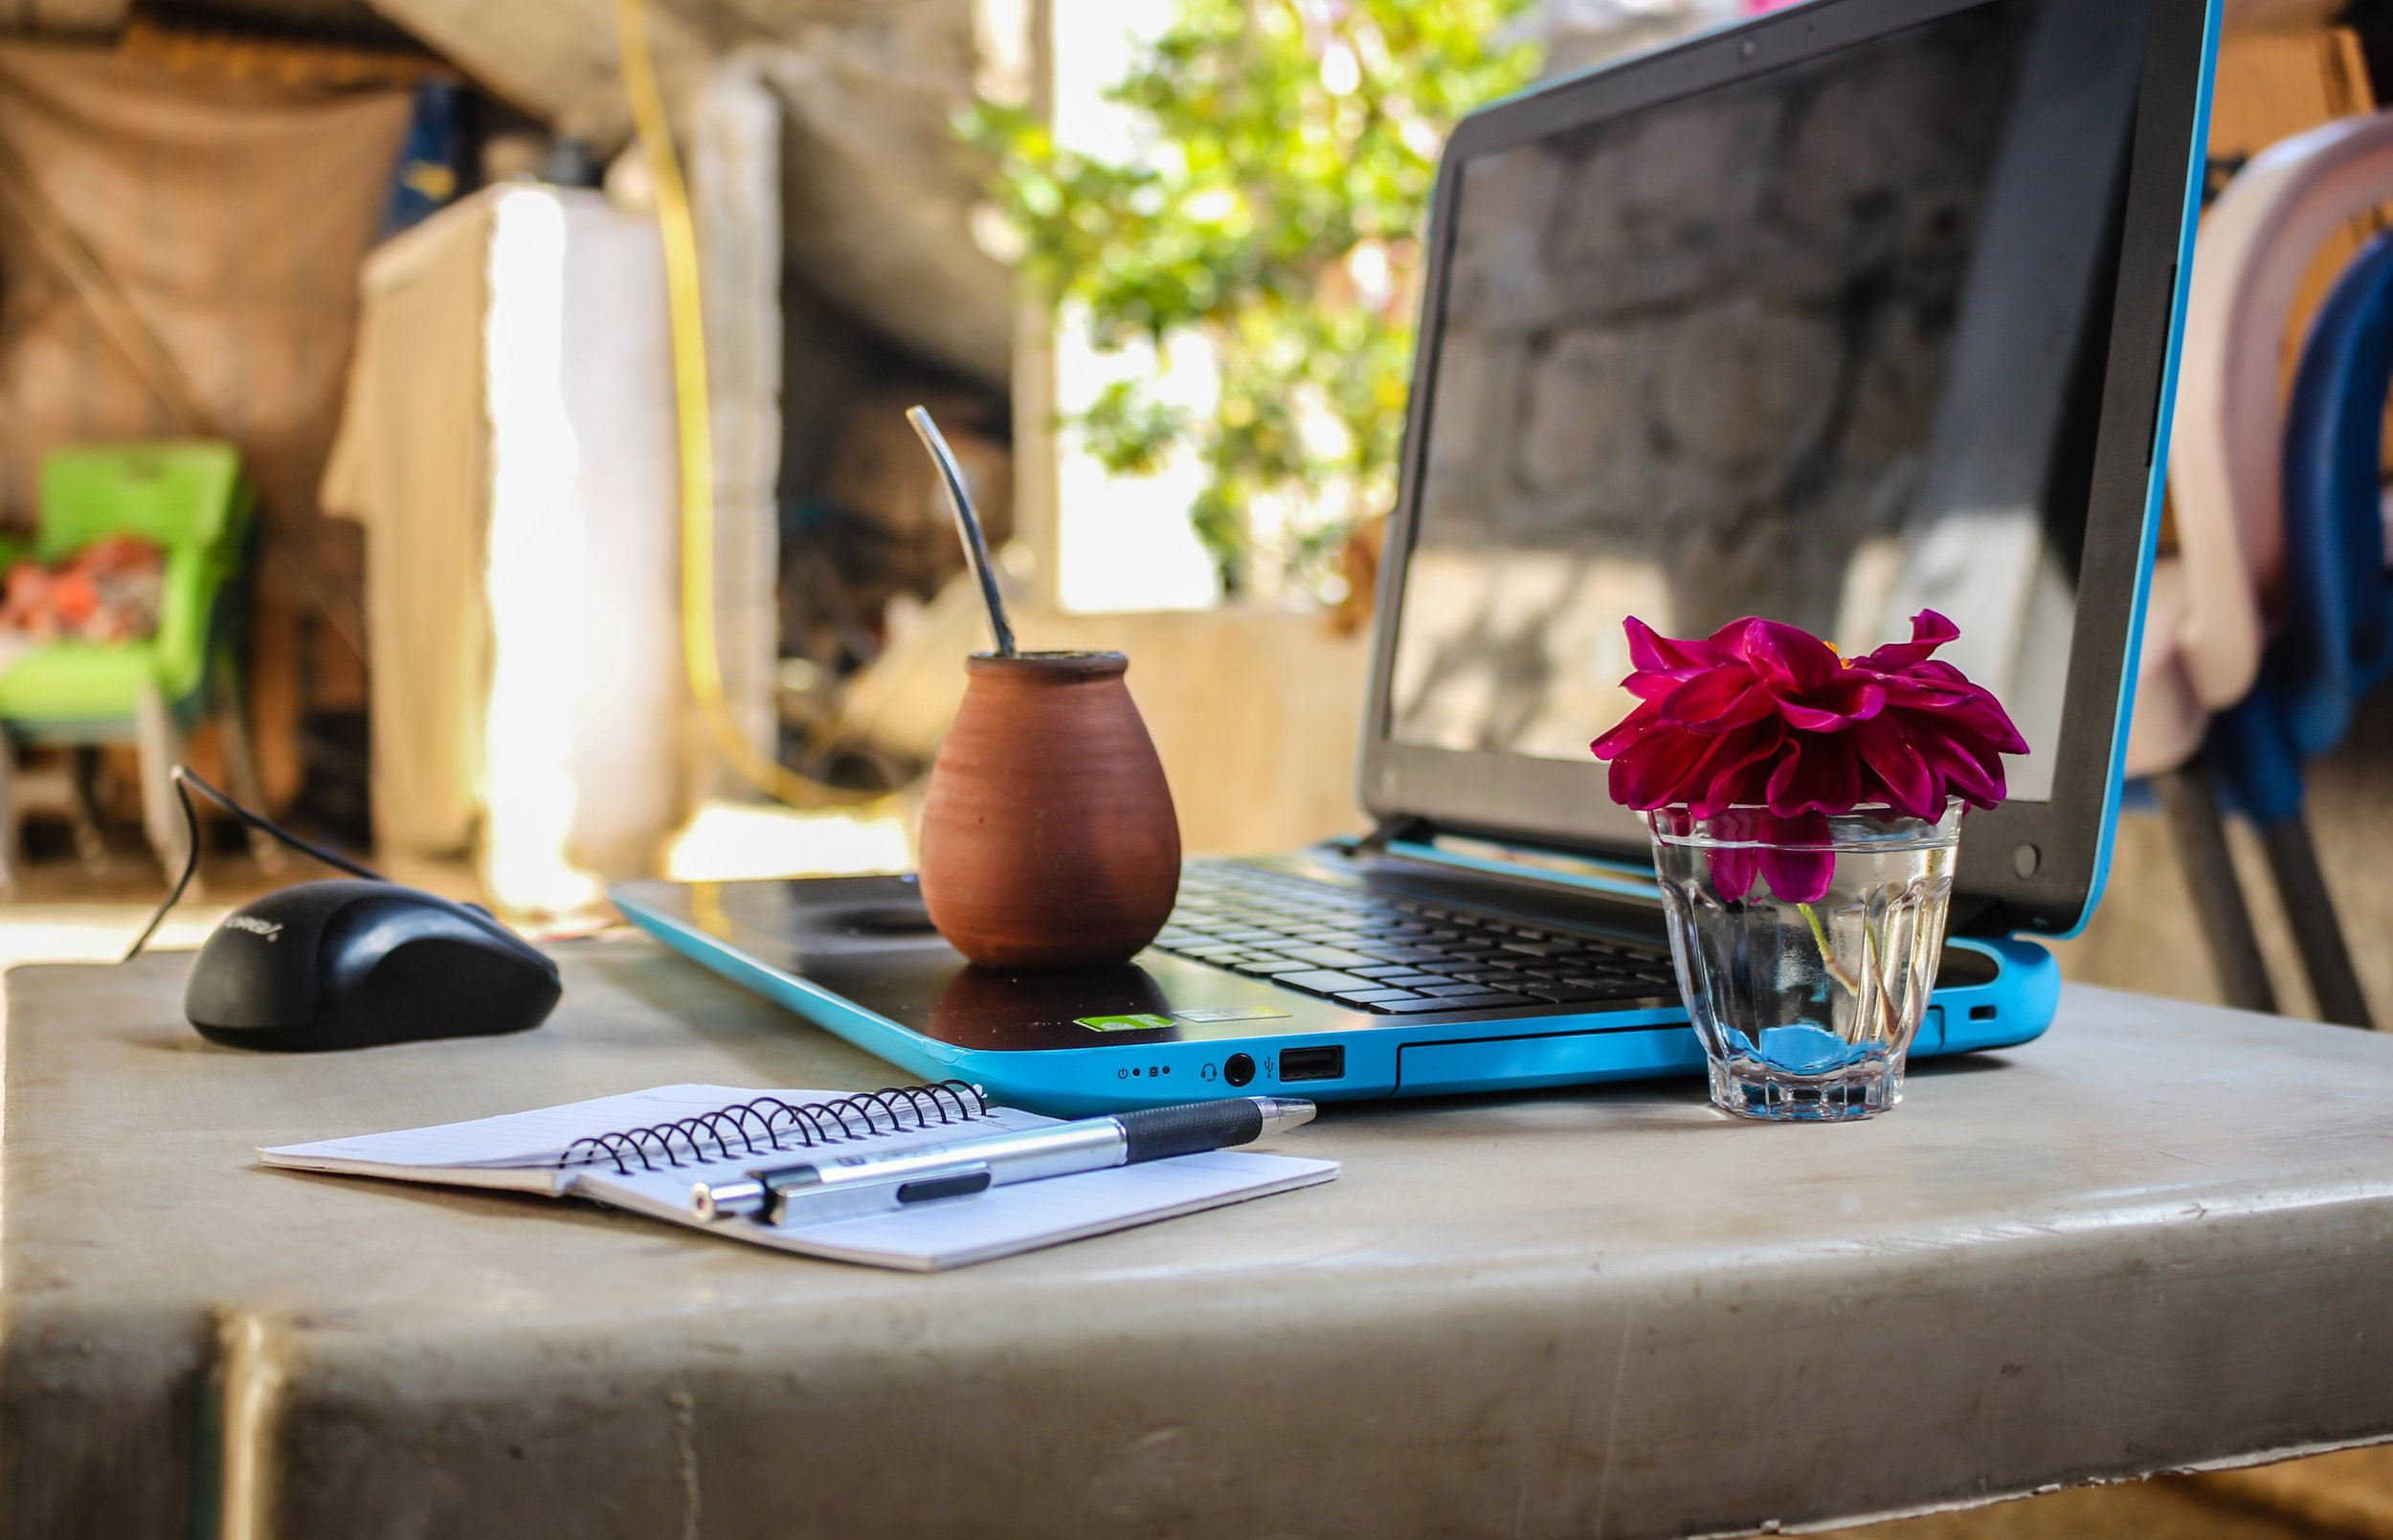 Our Practice - We at 7 Sigma OMS pride ourselves on being digital nomads - we are location-independent! You might just bump into one of our contractors working from a cafe in San Francisco, or from a beach in the Caribbean!